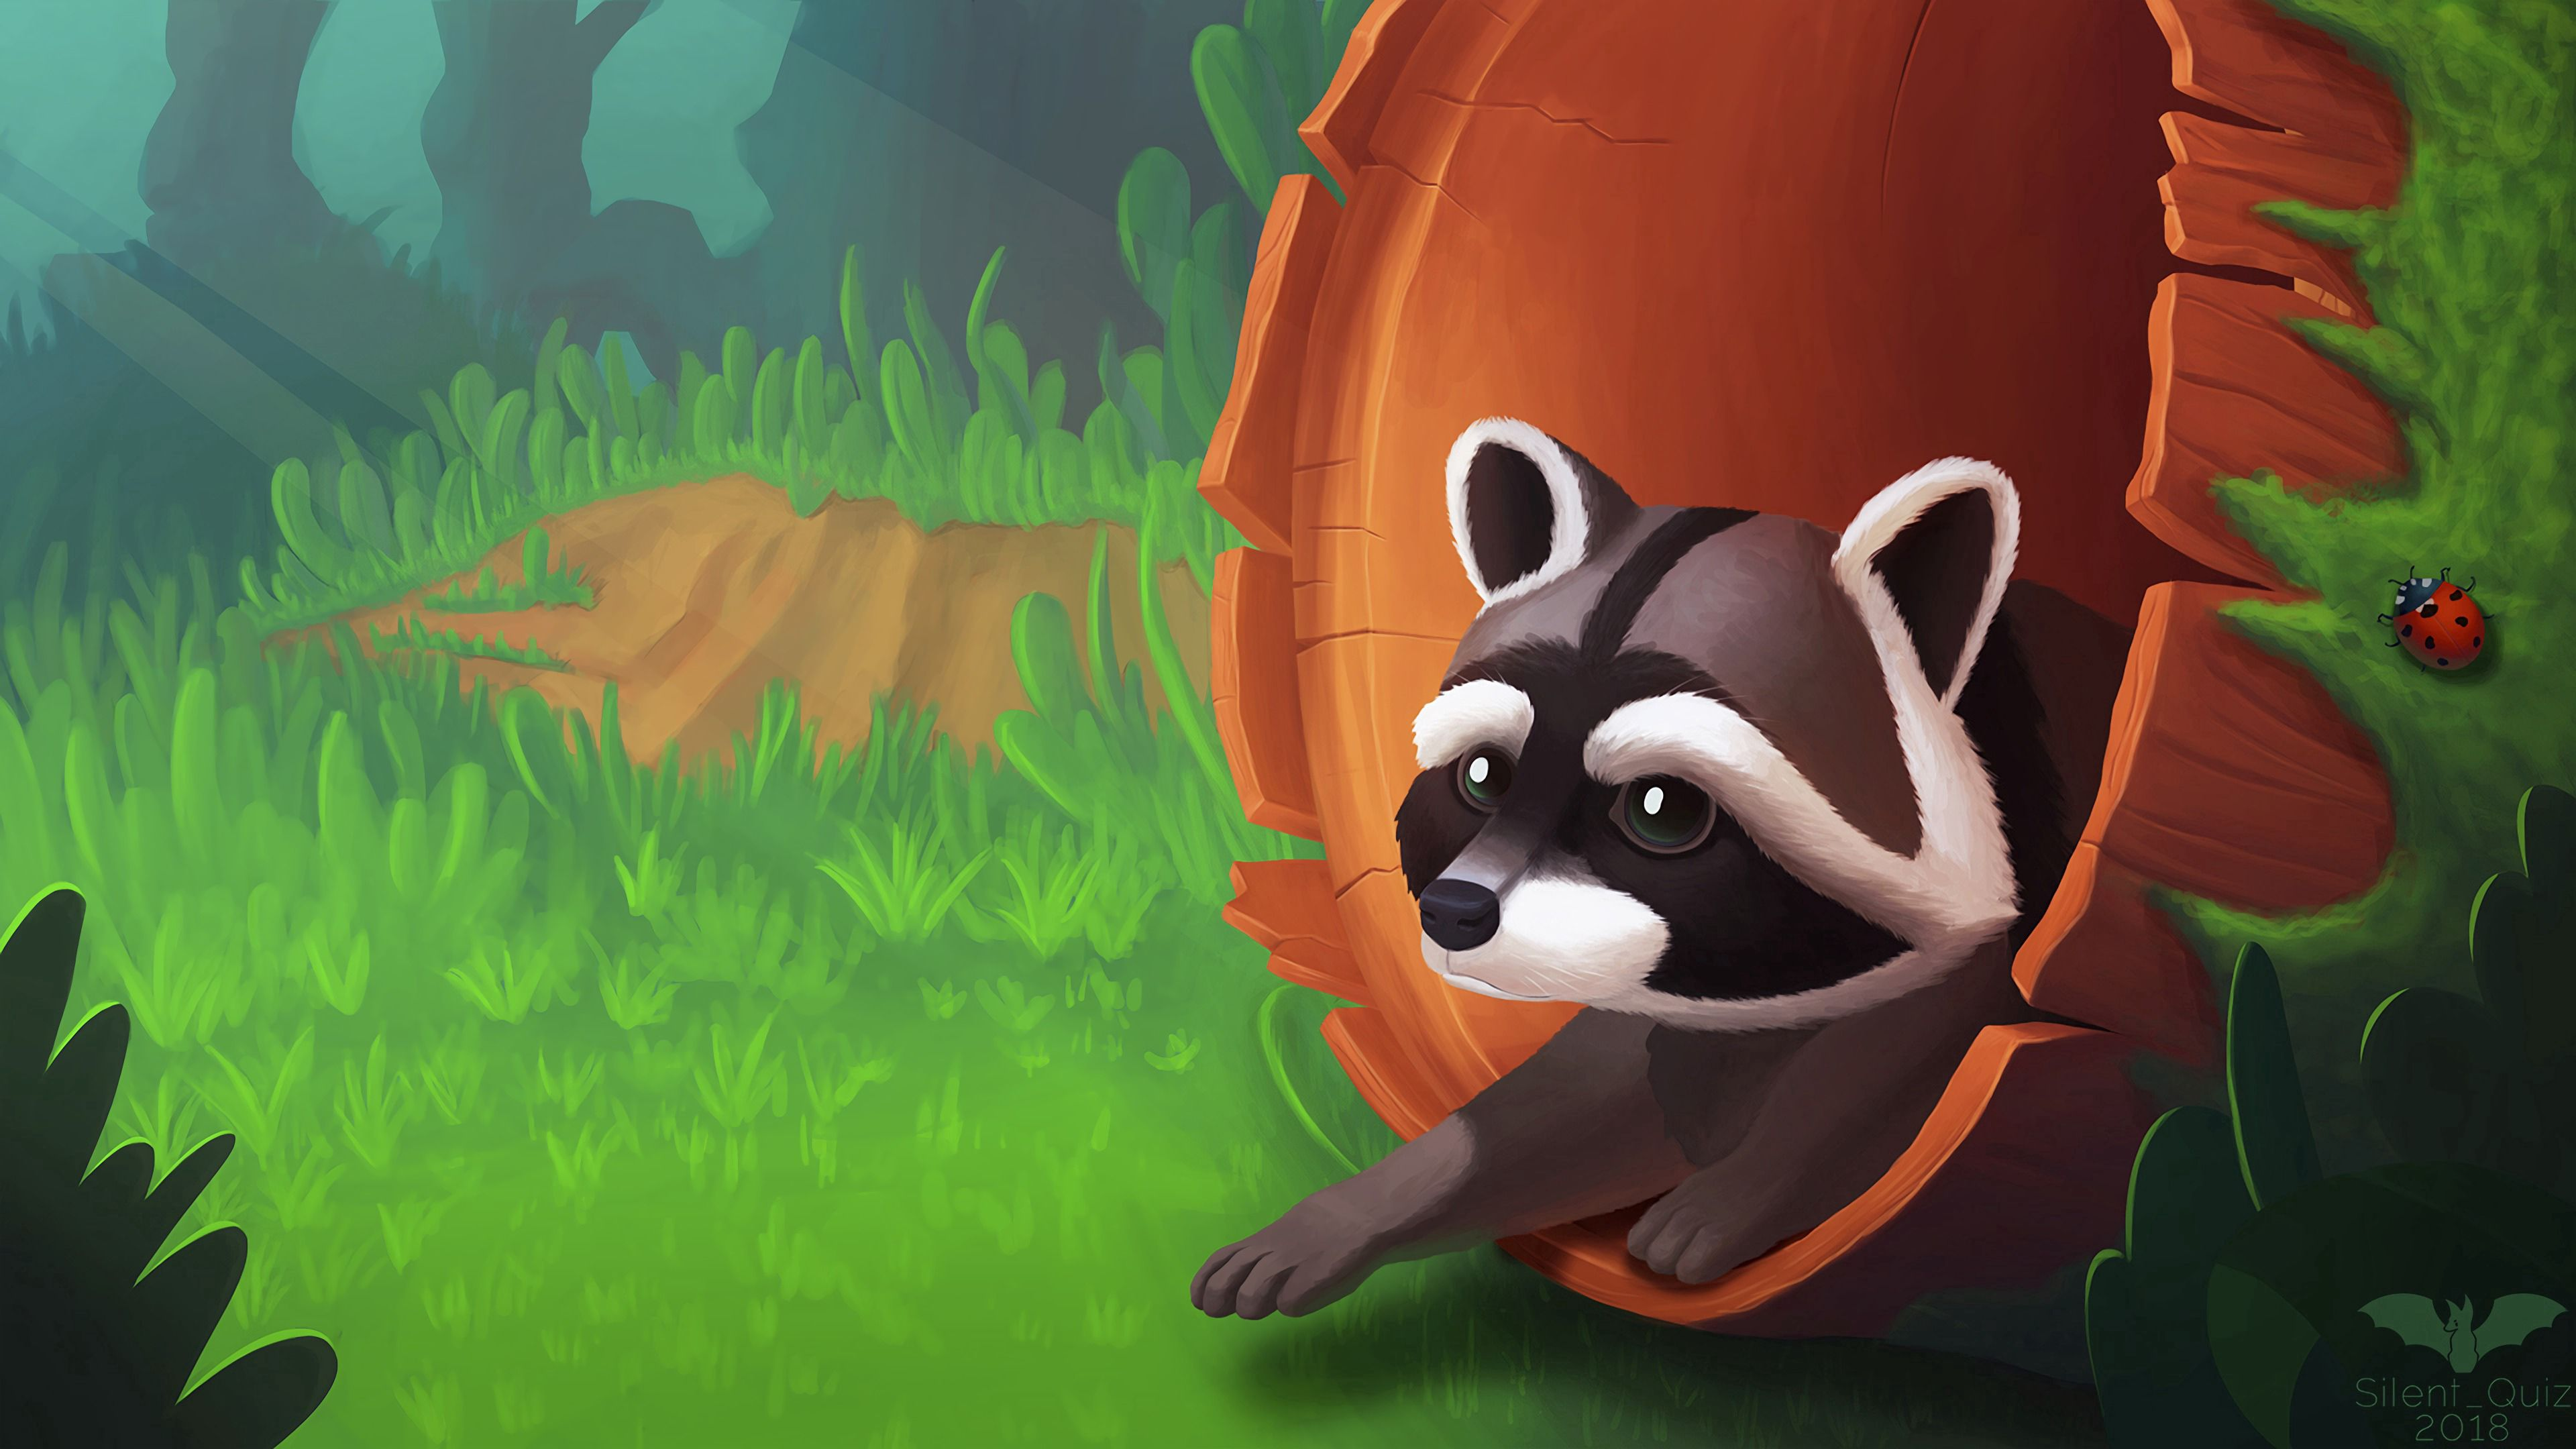 62675 Screensavers and Wallpapers Raccoon for phone. Download Grass, Art, Wood, Tree, Raccoon pictures for free